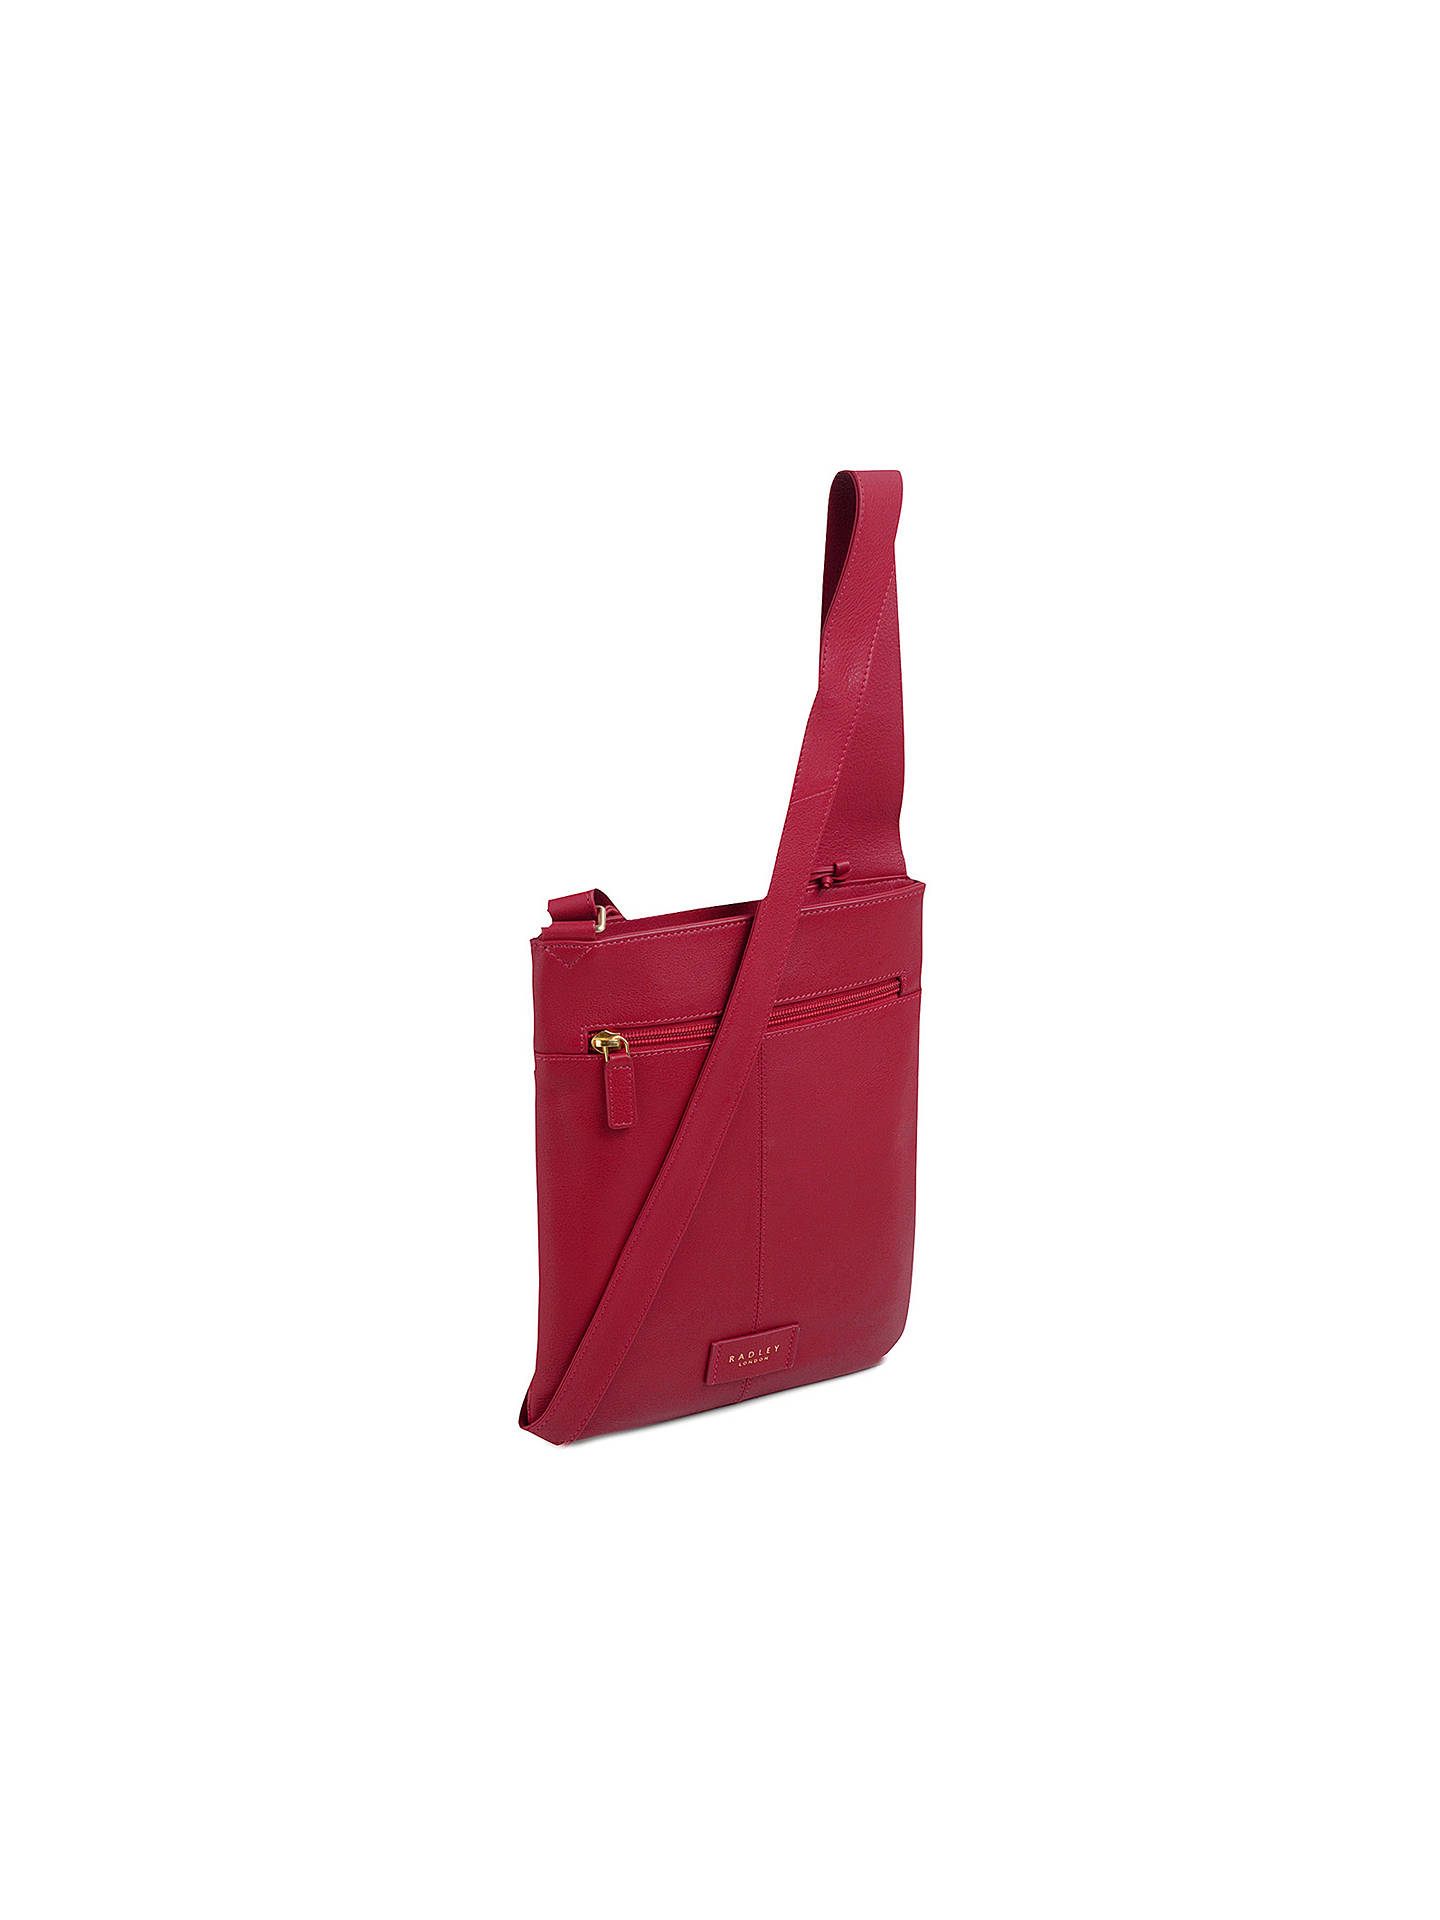 BuyRadley Patch Pocket Leather Cross Body Bag, Claret Red Online at johnlewis.com